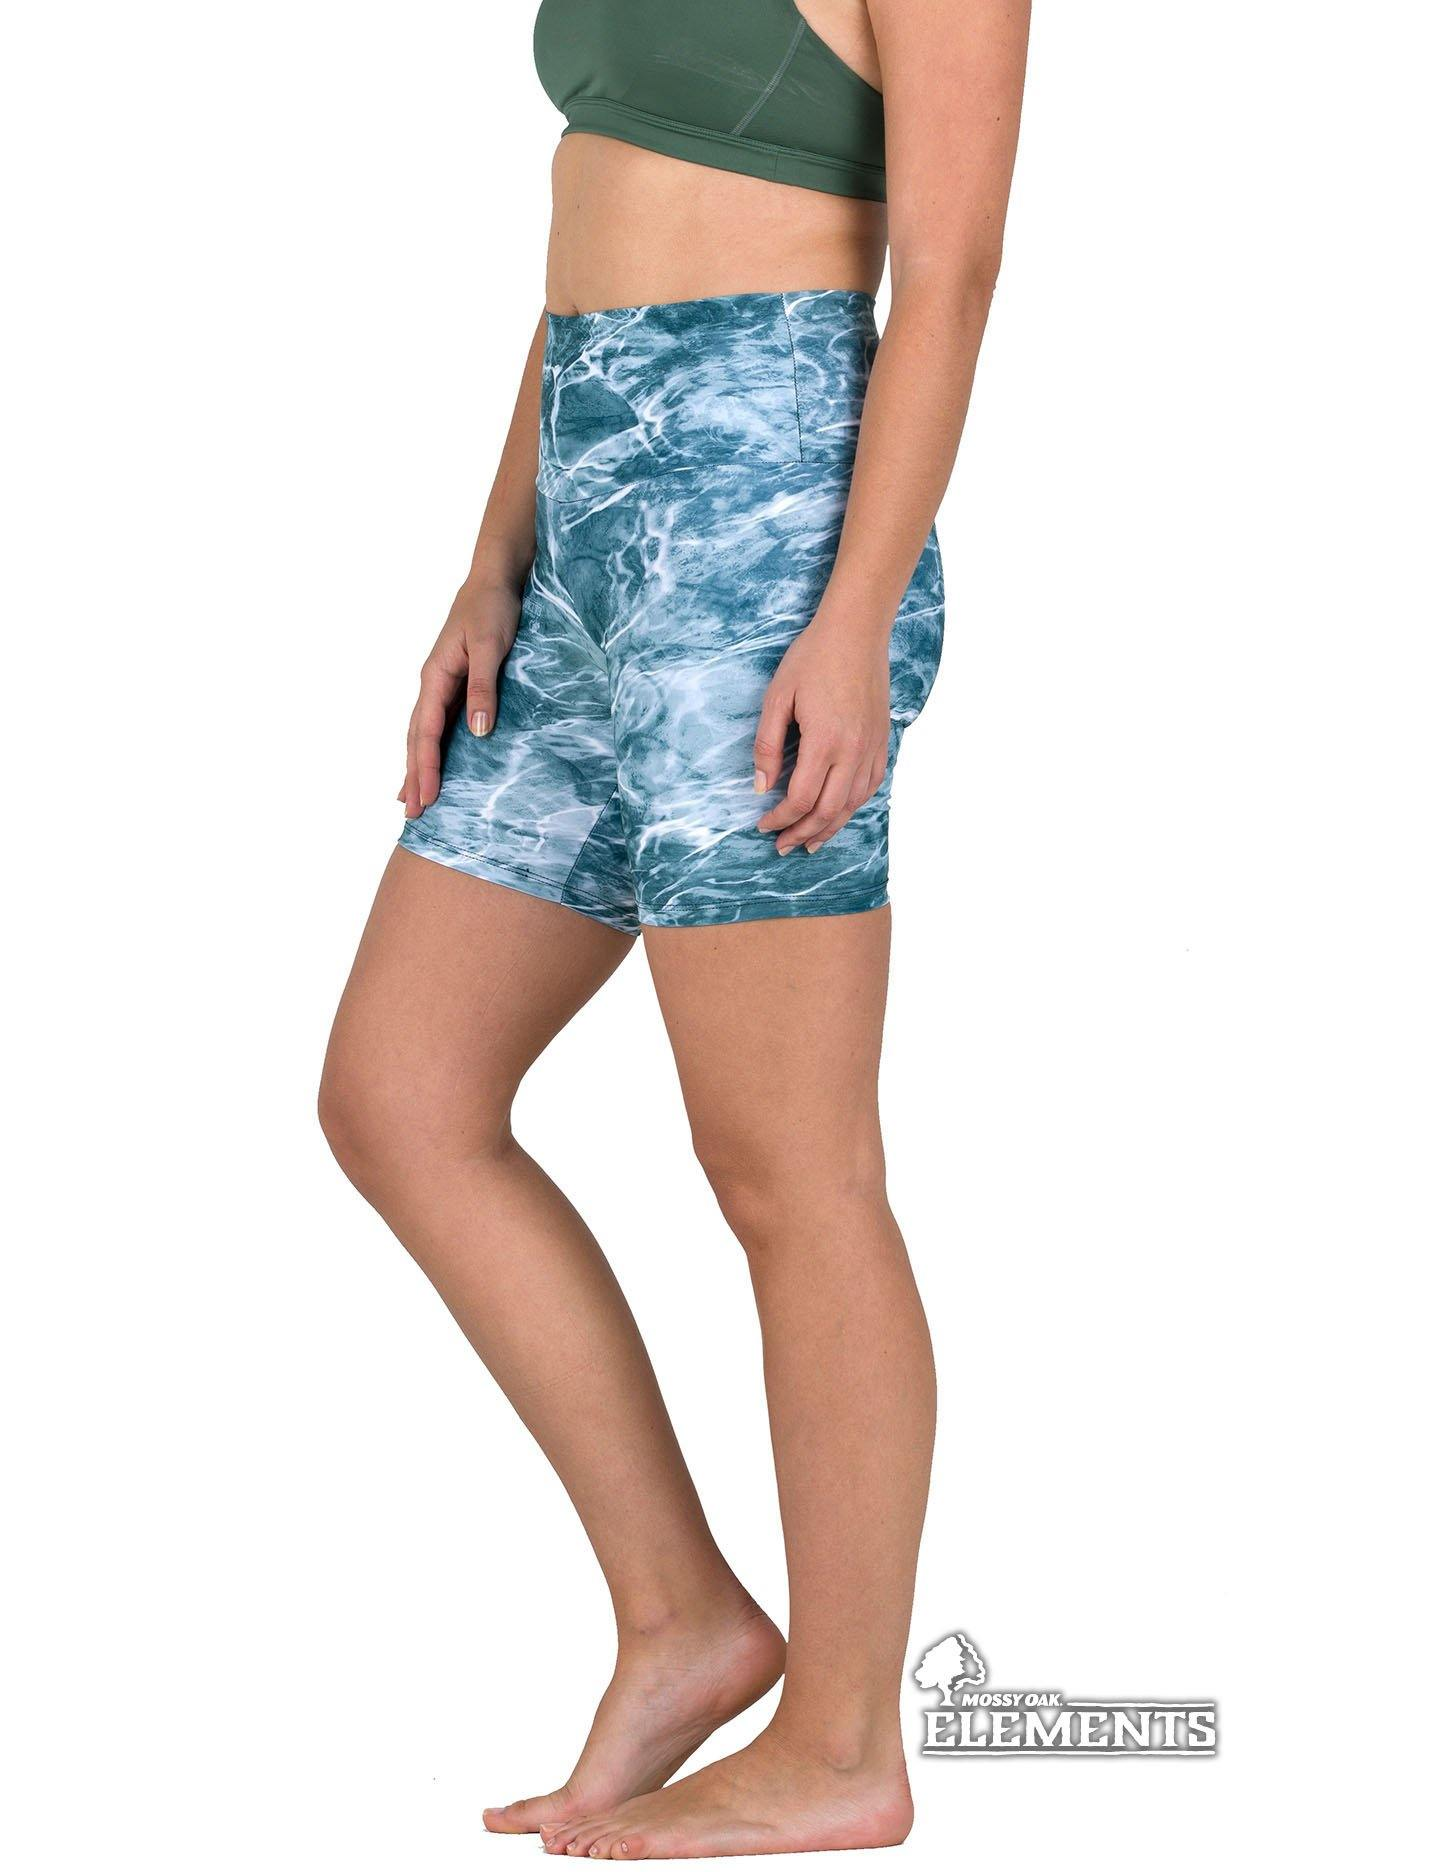 Apsara Shorts High Waist, Mossy Oak Elements Spindrift